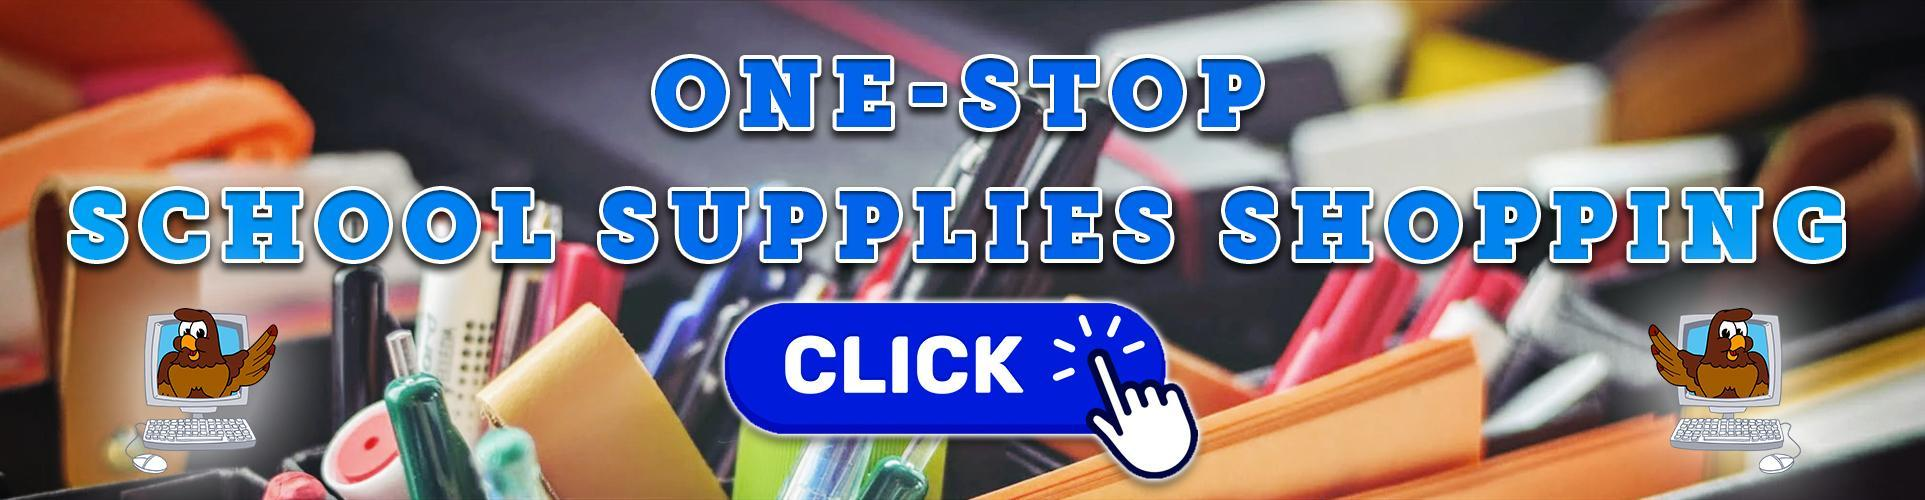 One-Stop School Supplies Shopping